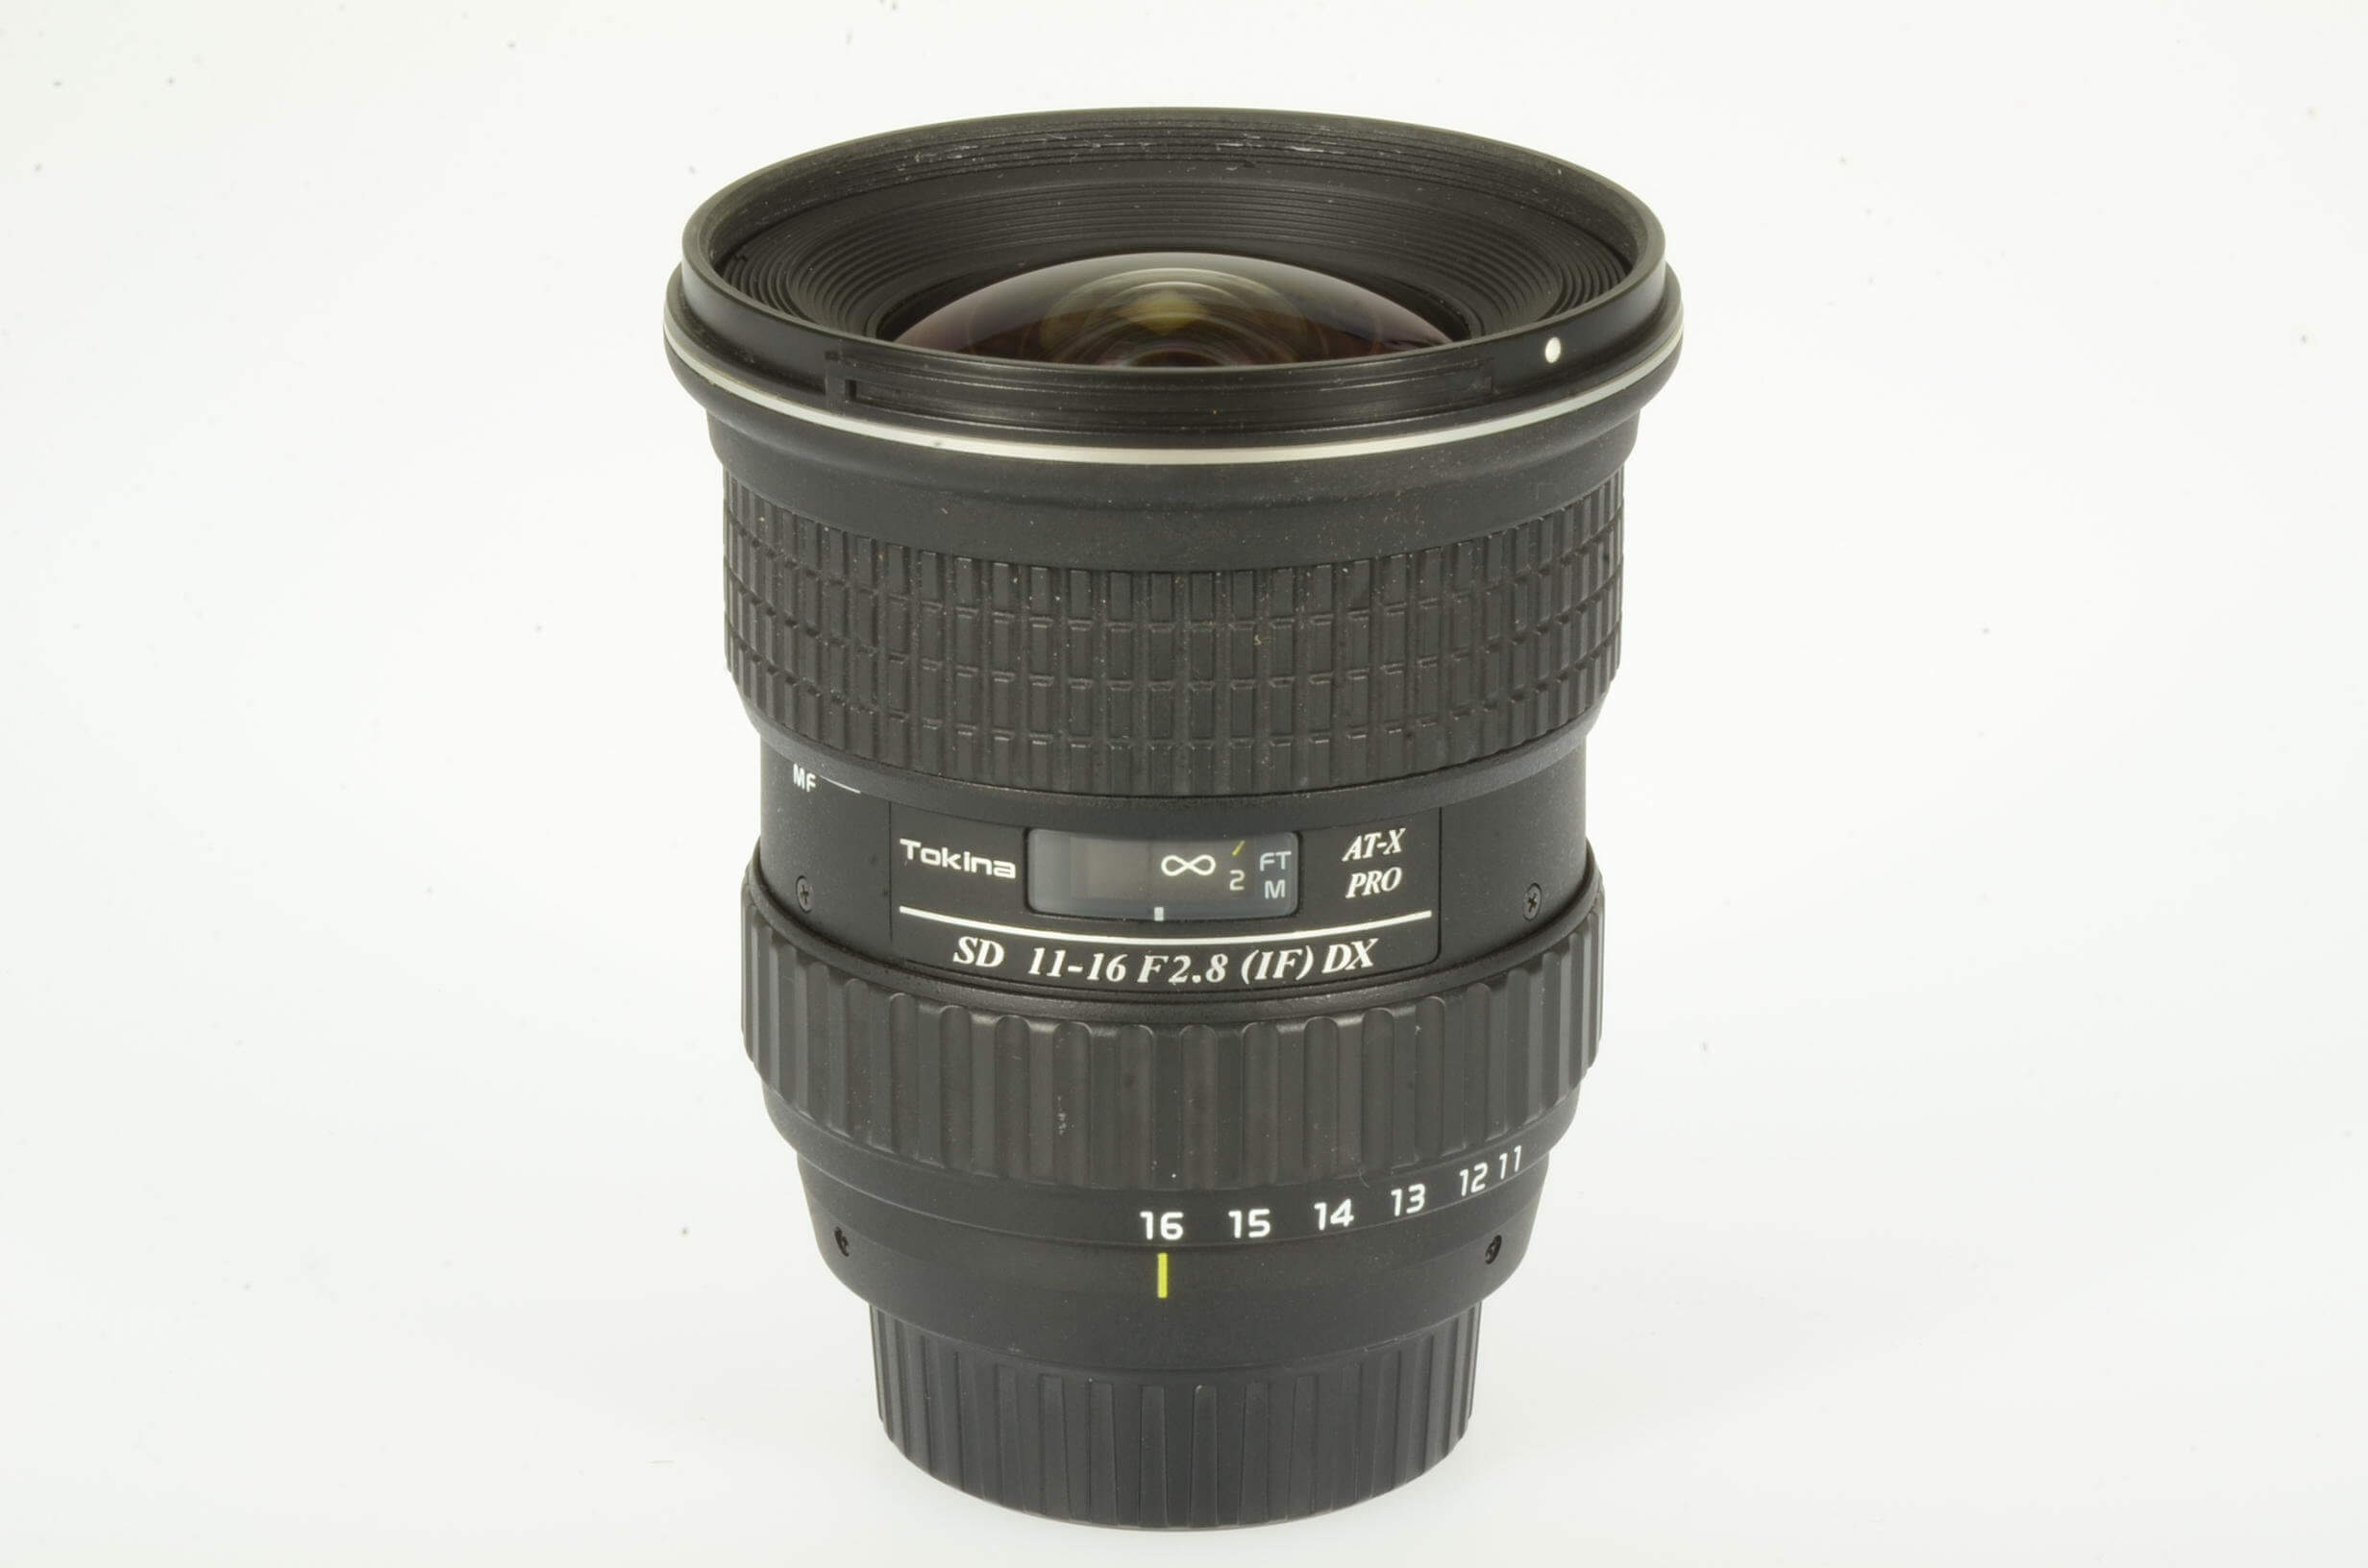 Tokina 11-16mm f2.8 AT-X Pro, Nikon AF DX fitting, mint condition!